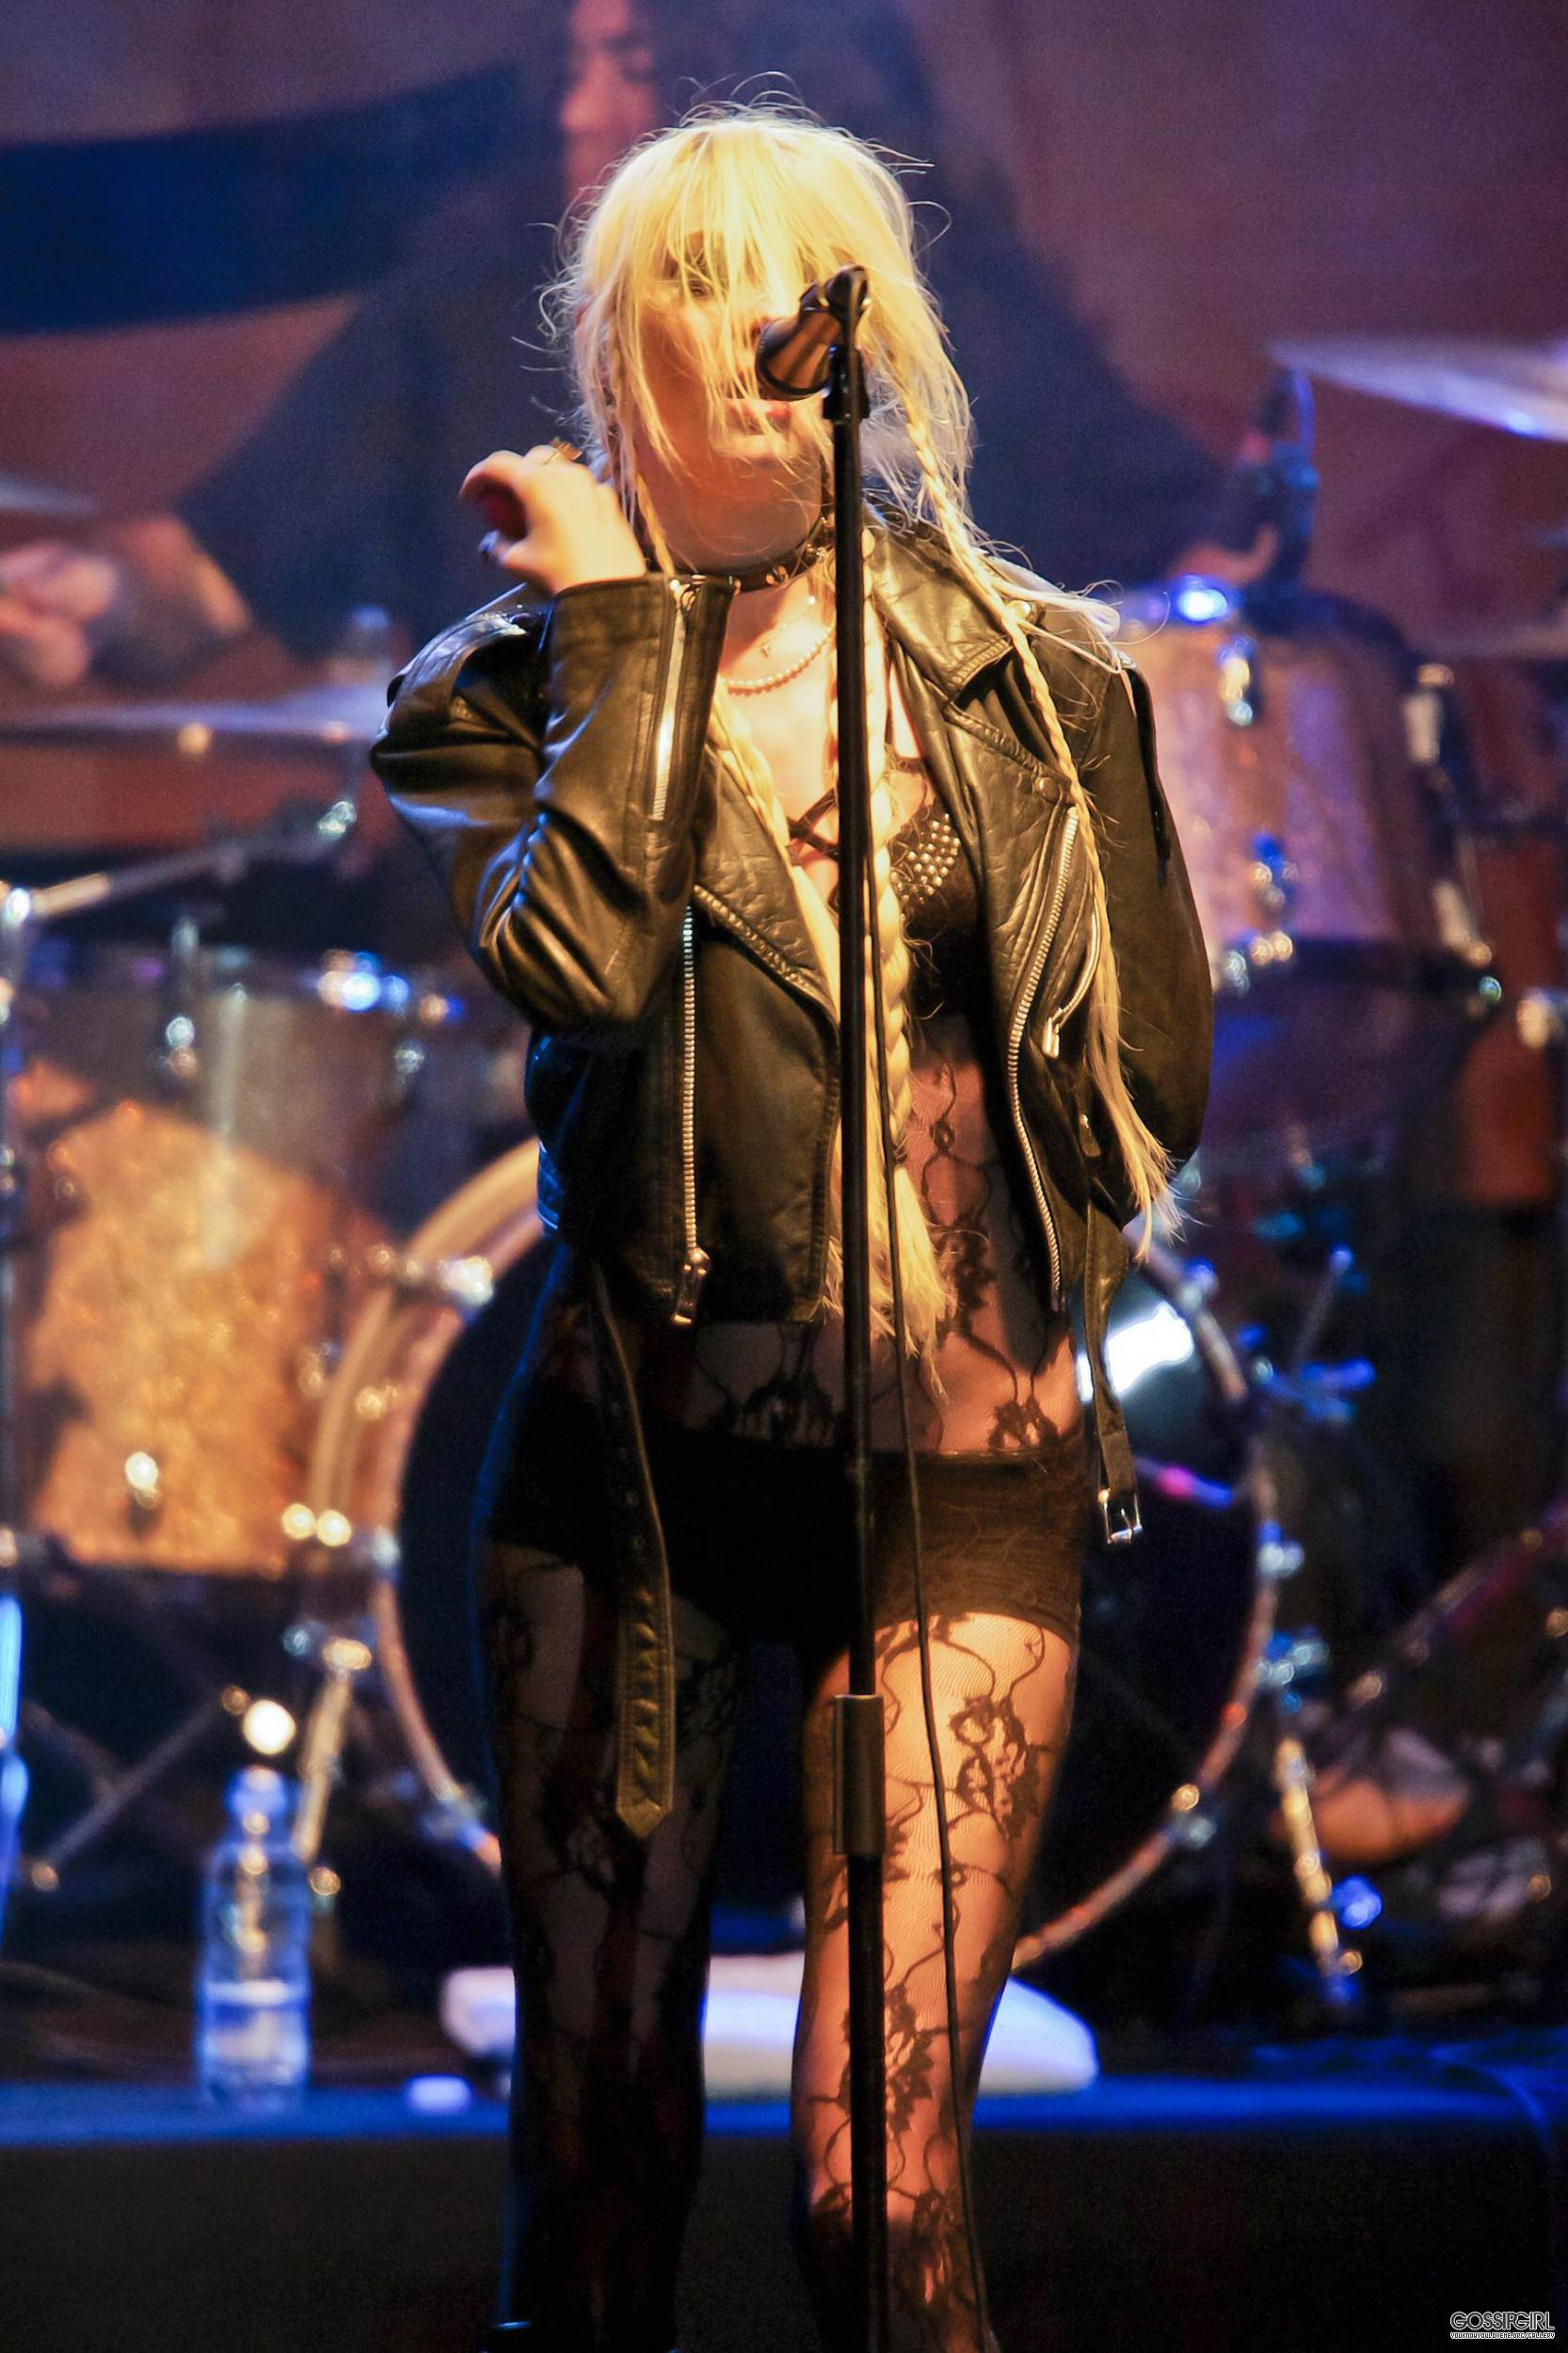 July 7th – The Pretty Reckless Perform in concierto in Madrid